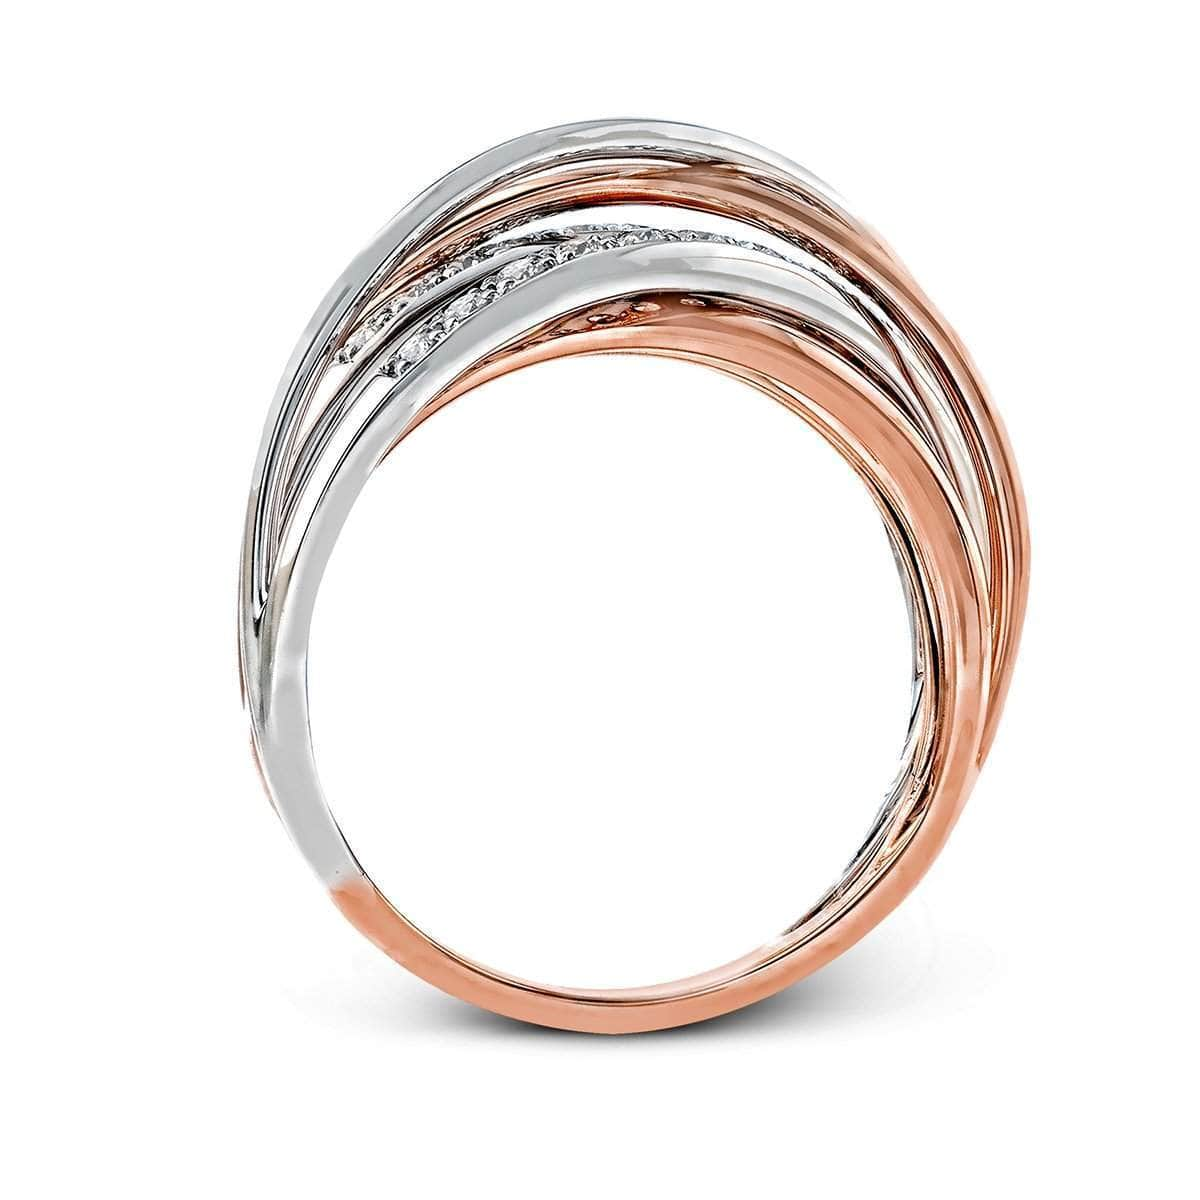 Beautiful Fable 3 Wedding Ring Adornment The Wedding Ideas